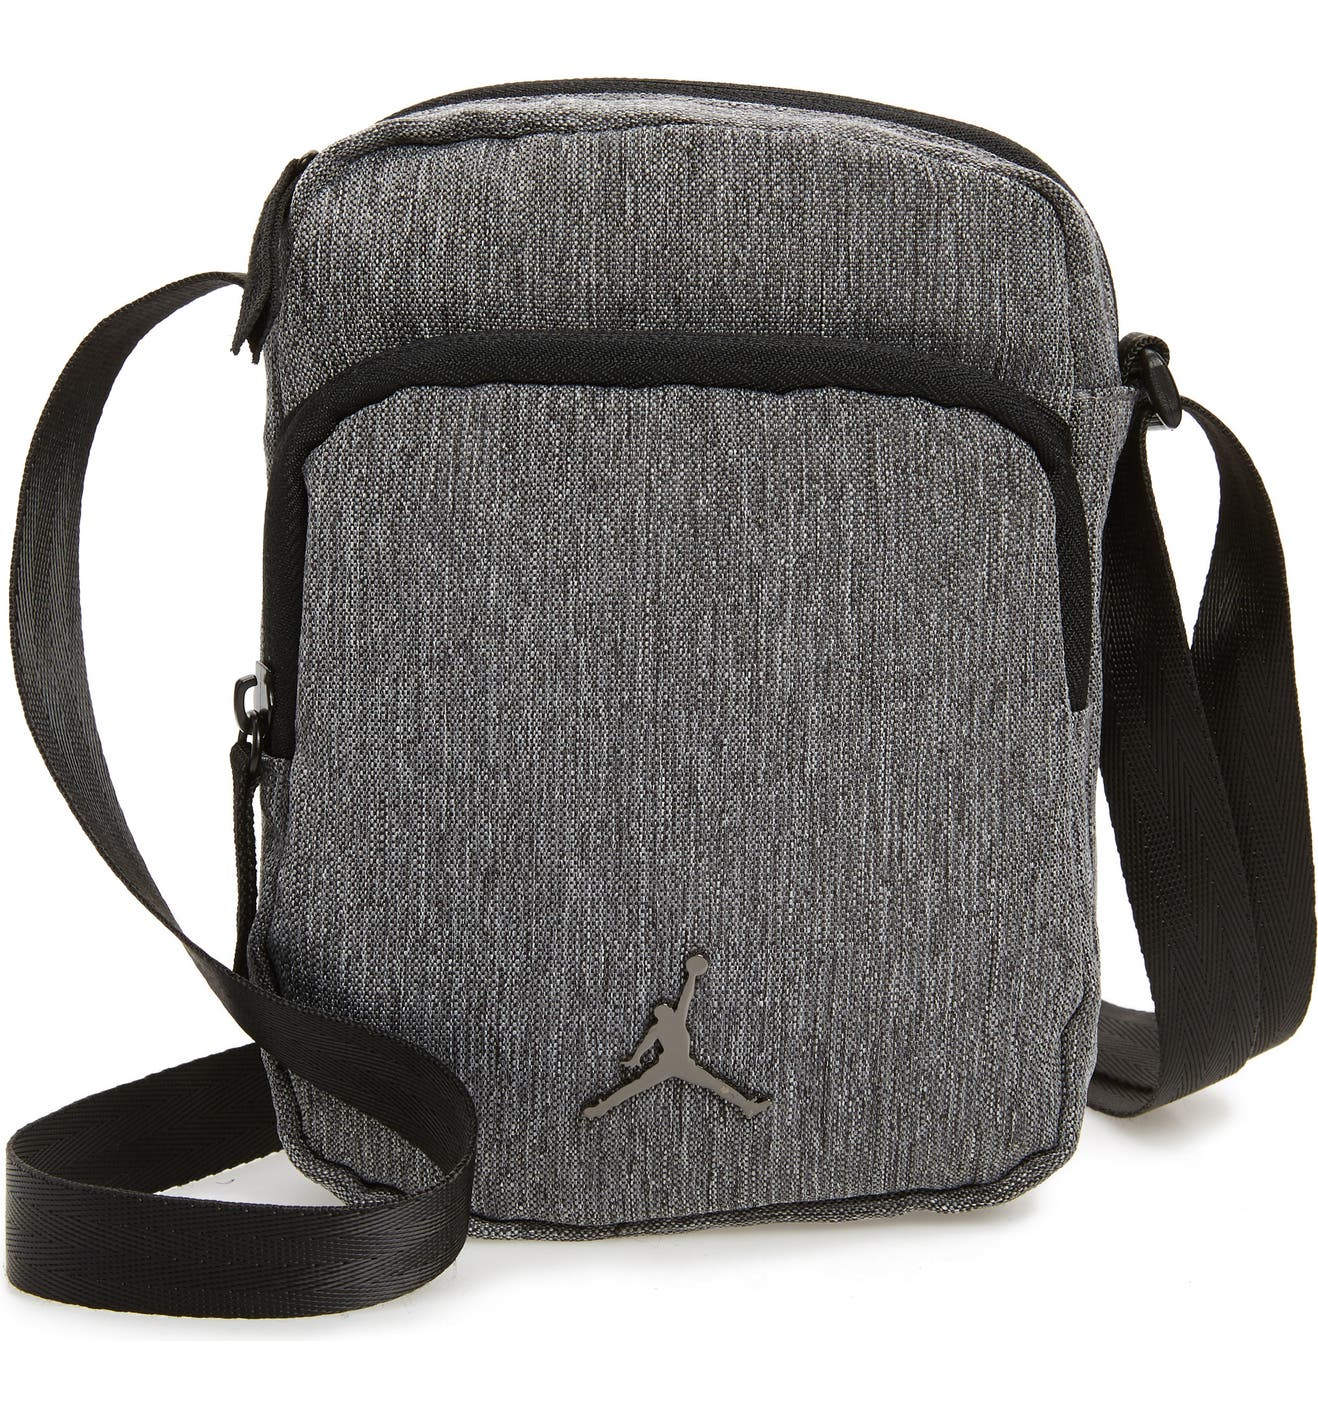 Jordan Airborne Crossbody Bag (Kids)  d1d2f029f83c5